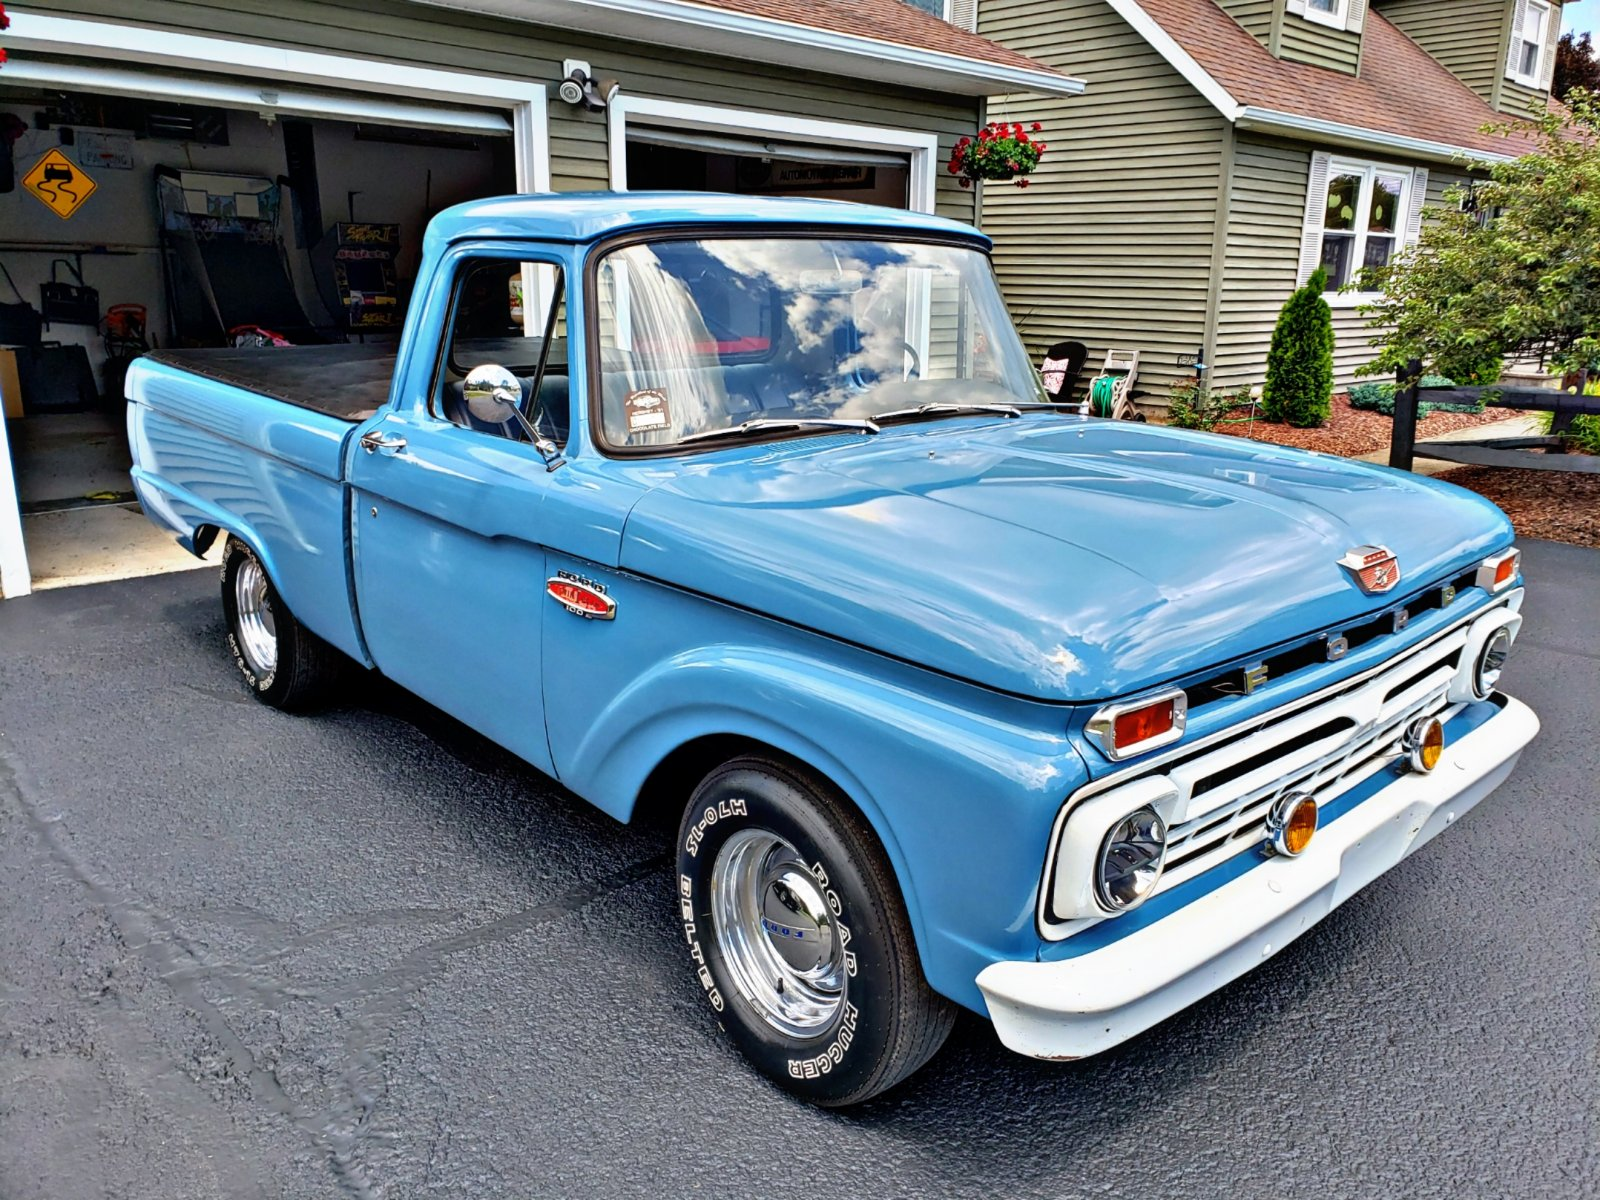 1966 Ford F100 Story About Truck Owner Chris F. 8.jpg